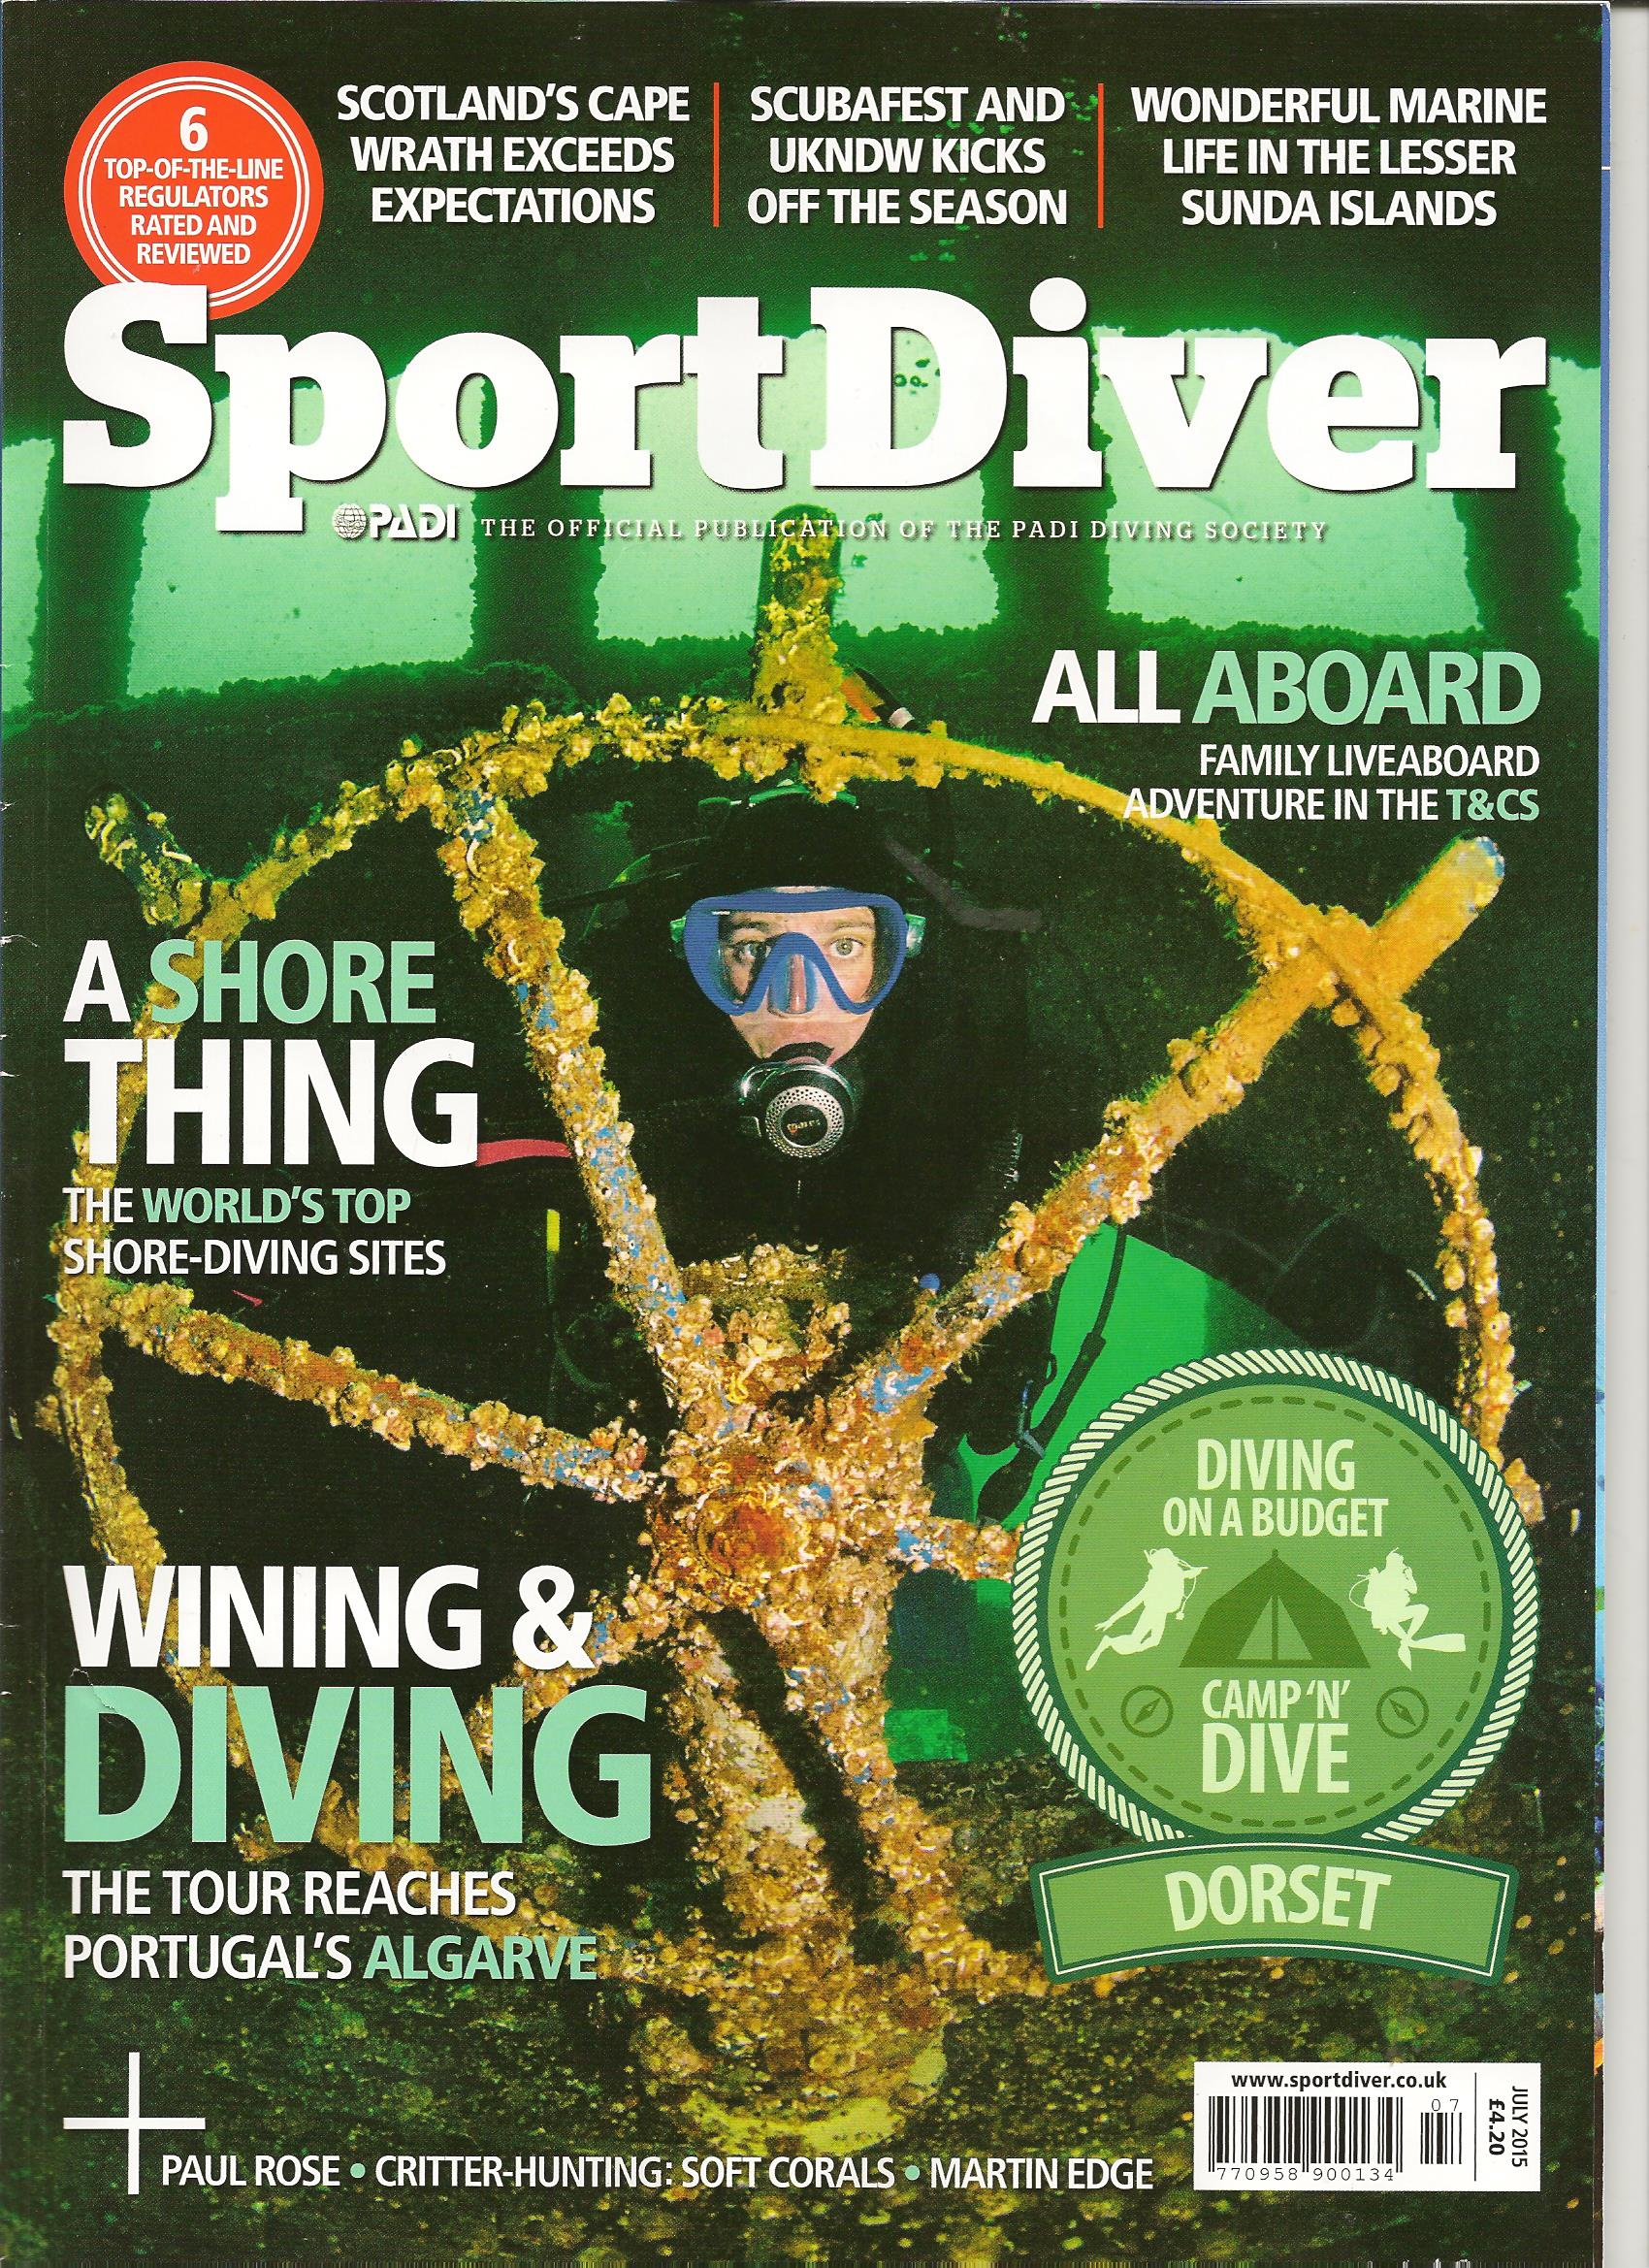 Sport diver Cover June 2015